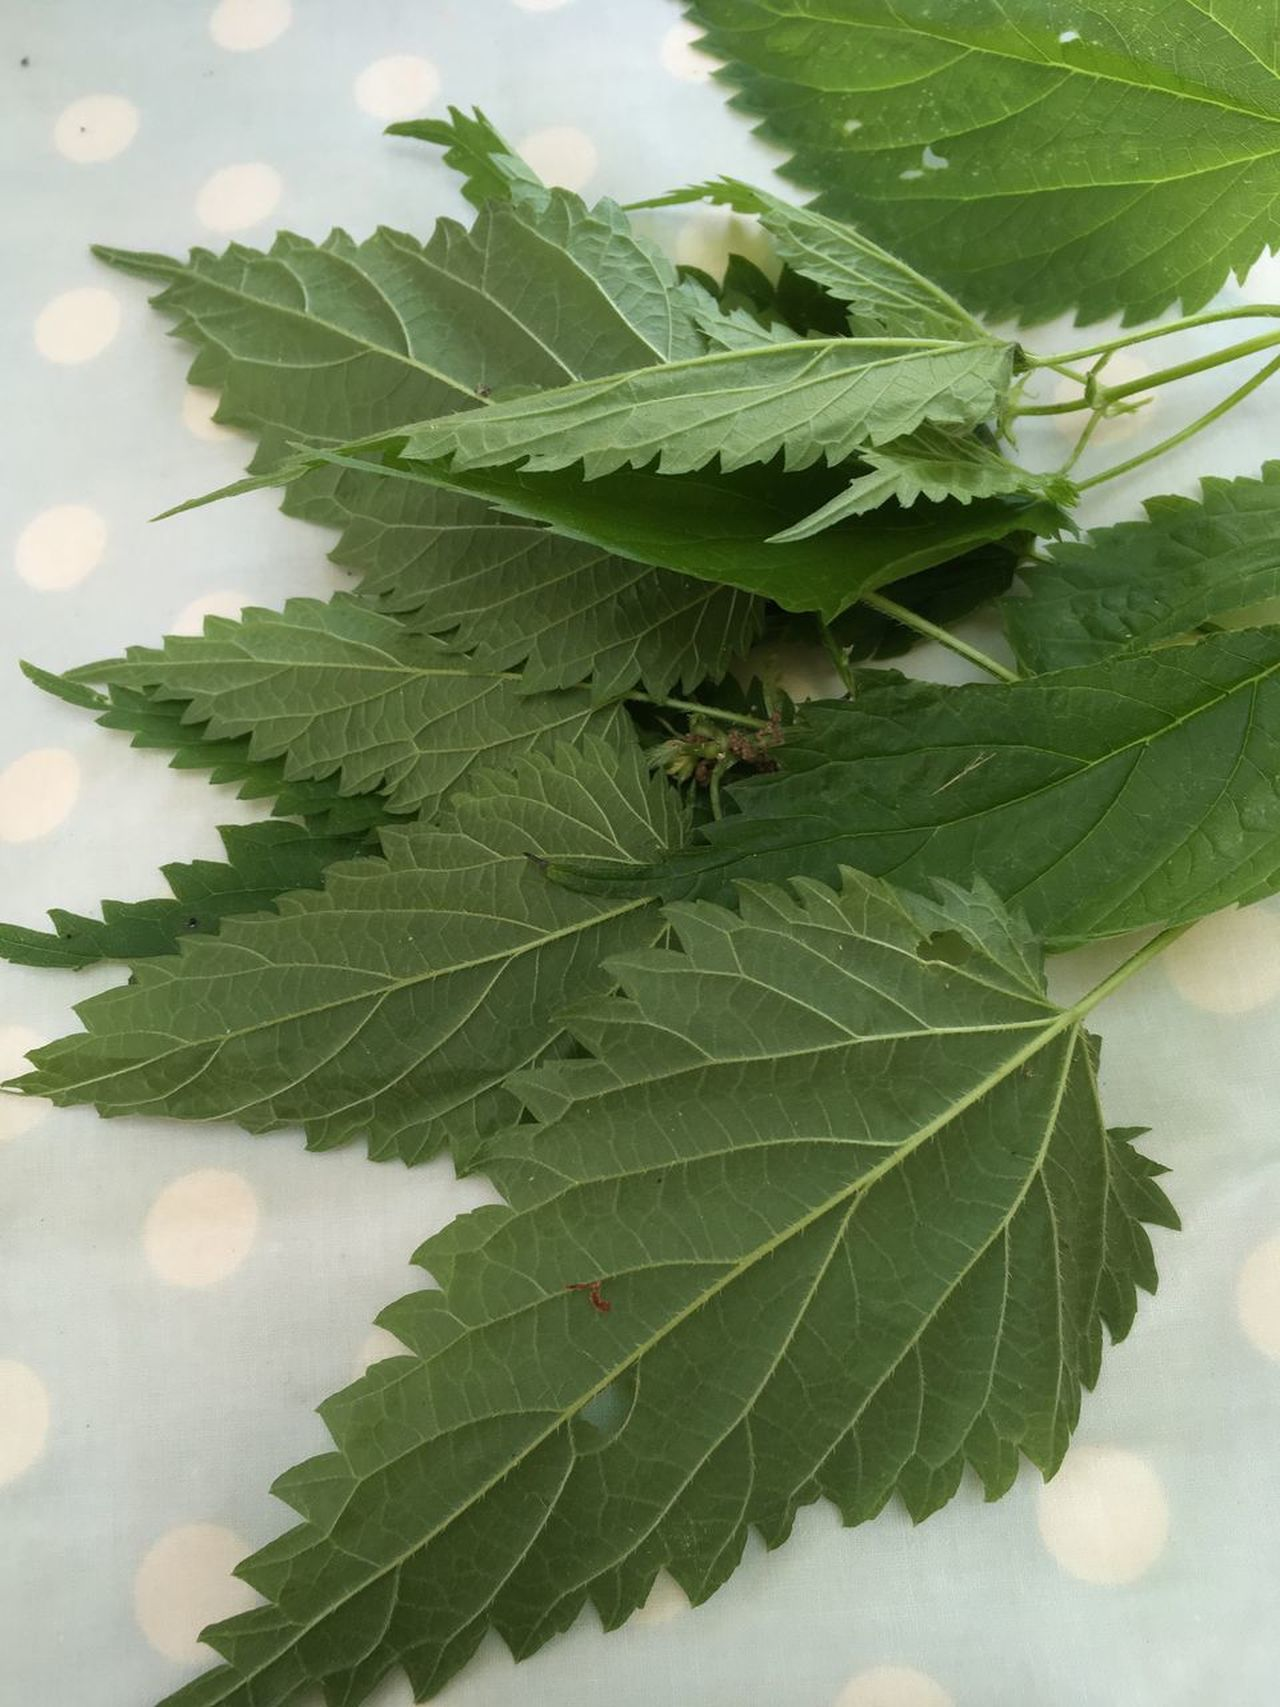 Leaf Green Color Plant Nettles Nature Freshness Beauty In Nature